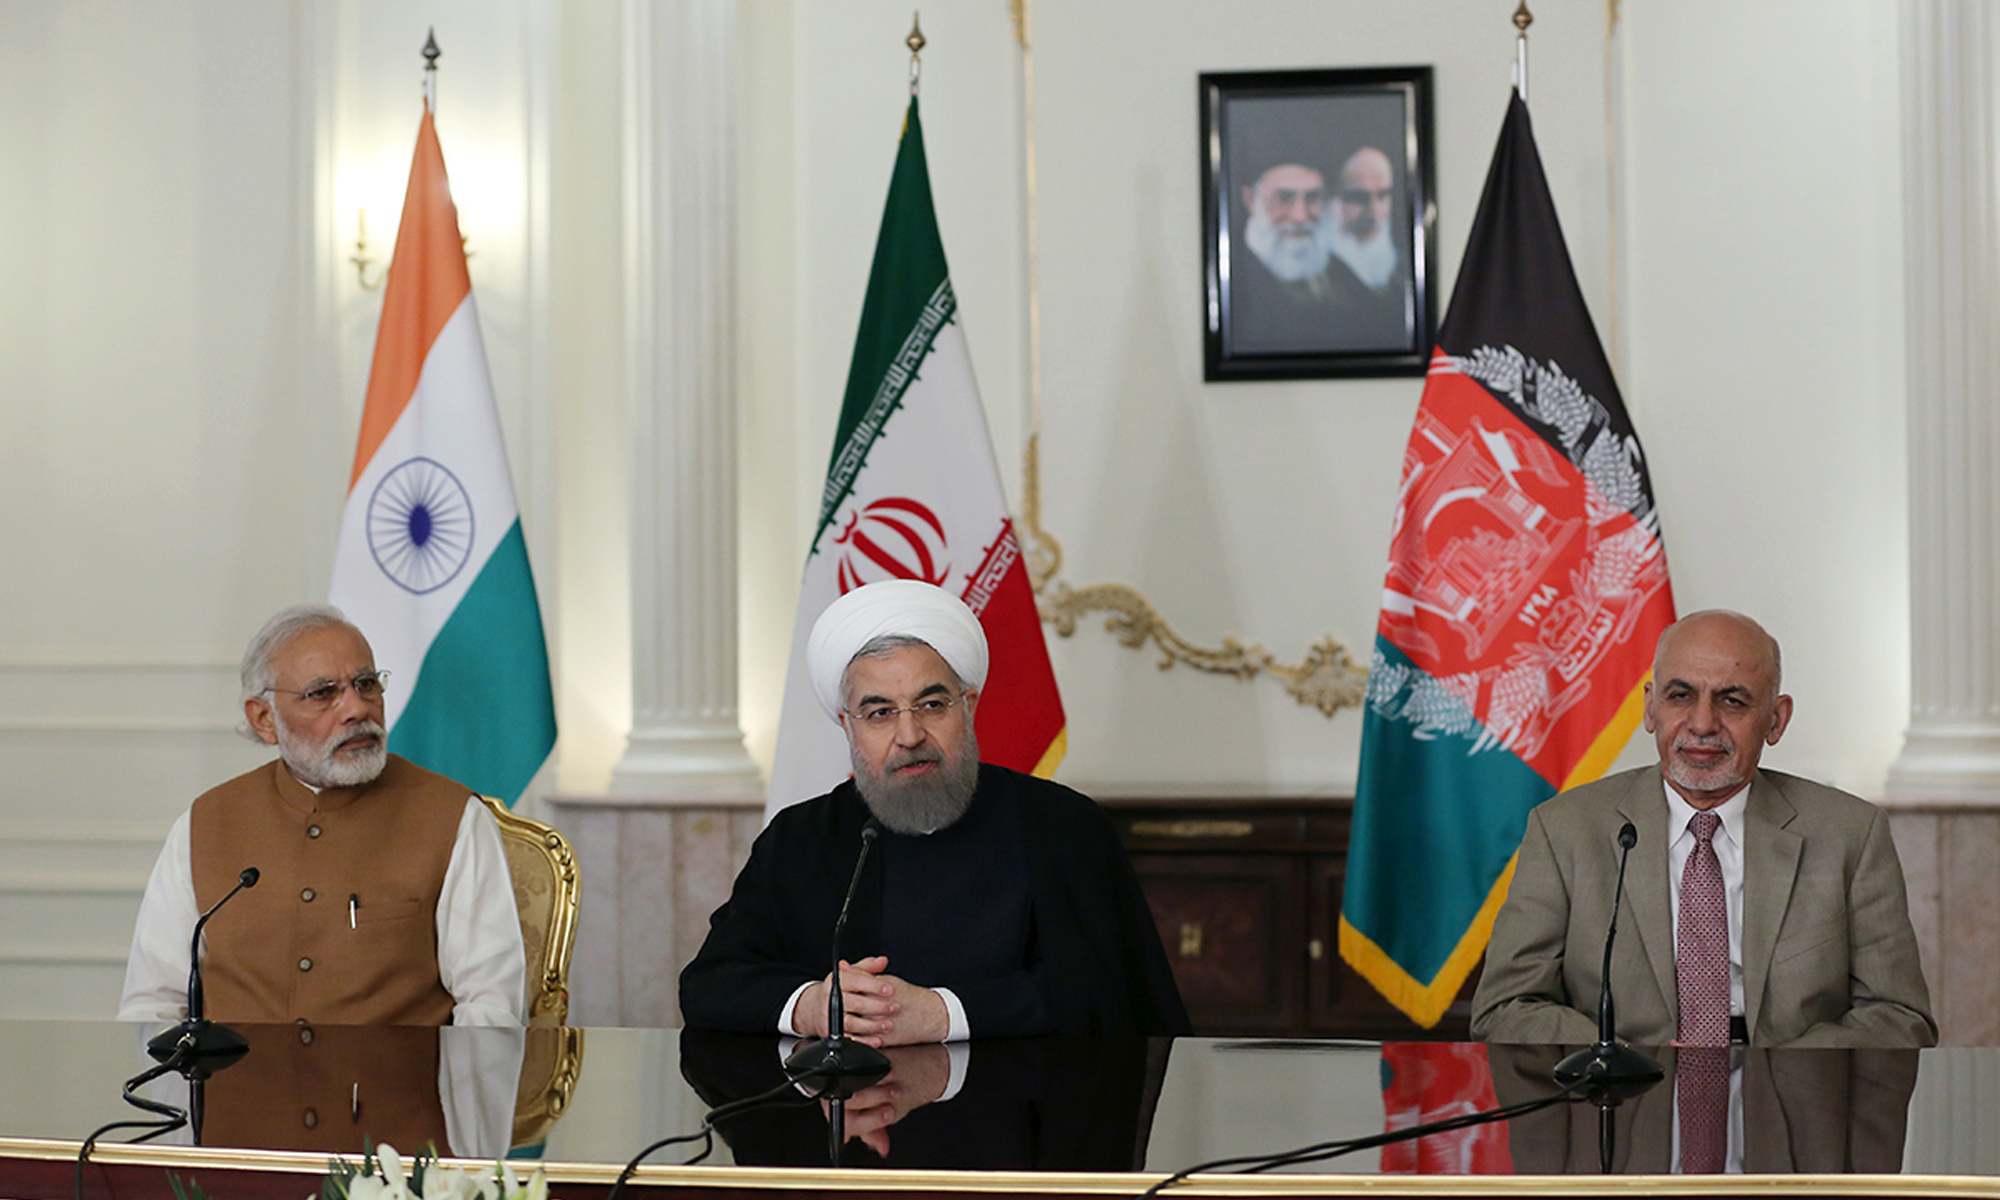 Iranian President Hassan Rouhani, speaks in a joint press briefing with Indian Prime Minister Narendra Modi and Afghanistan President Ashraf Ghani. AP